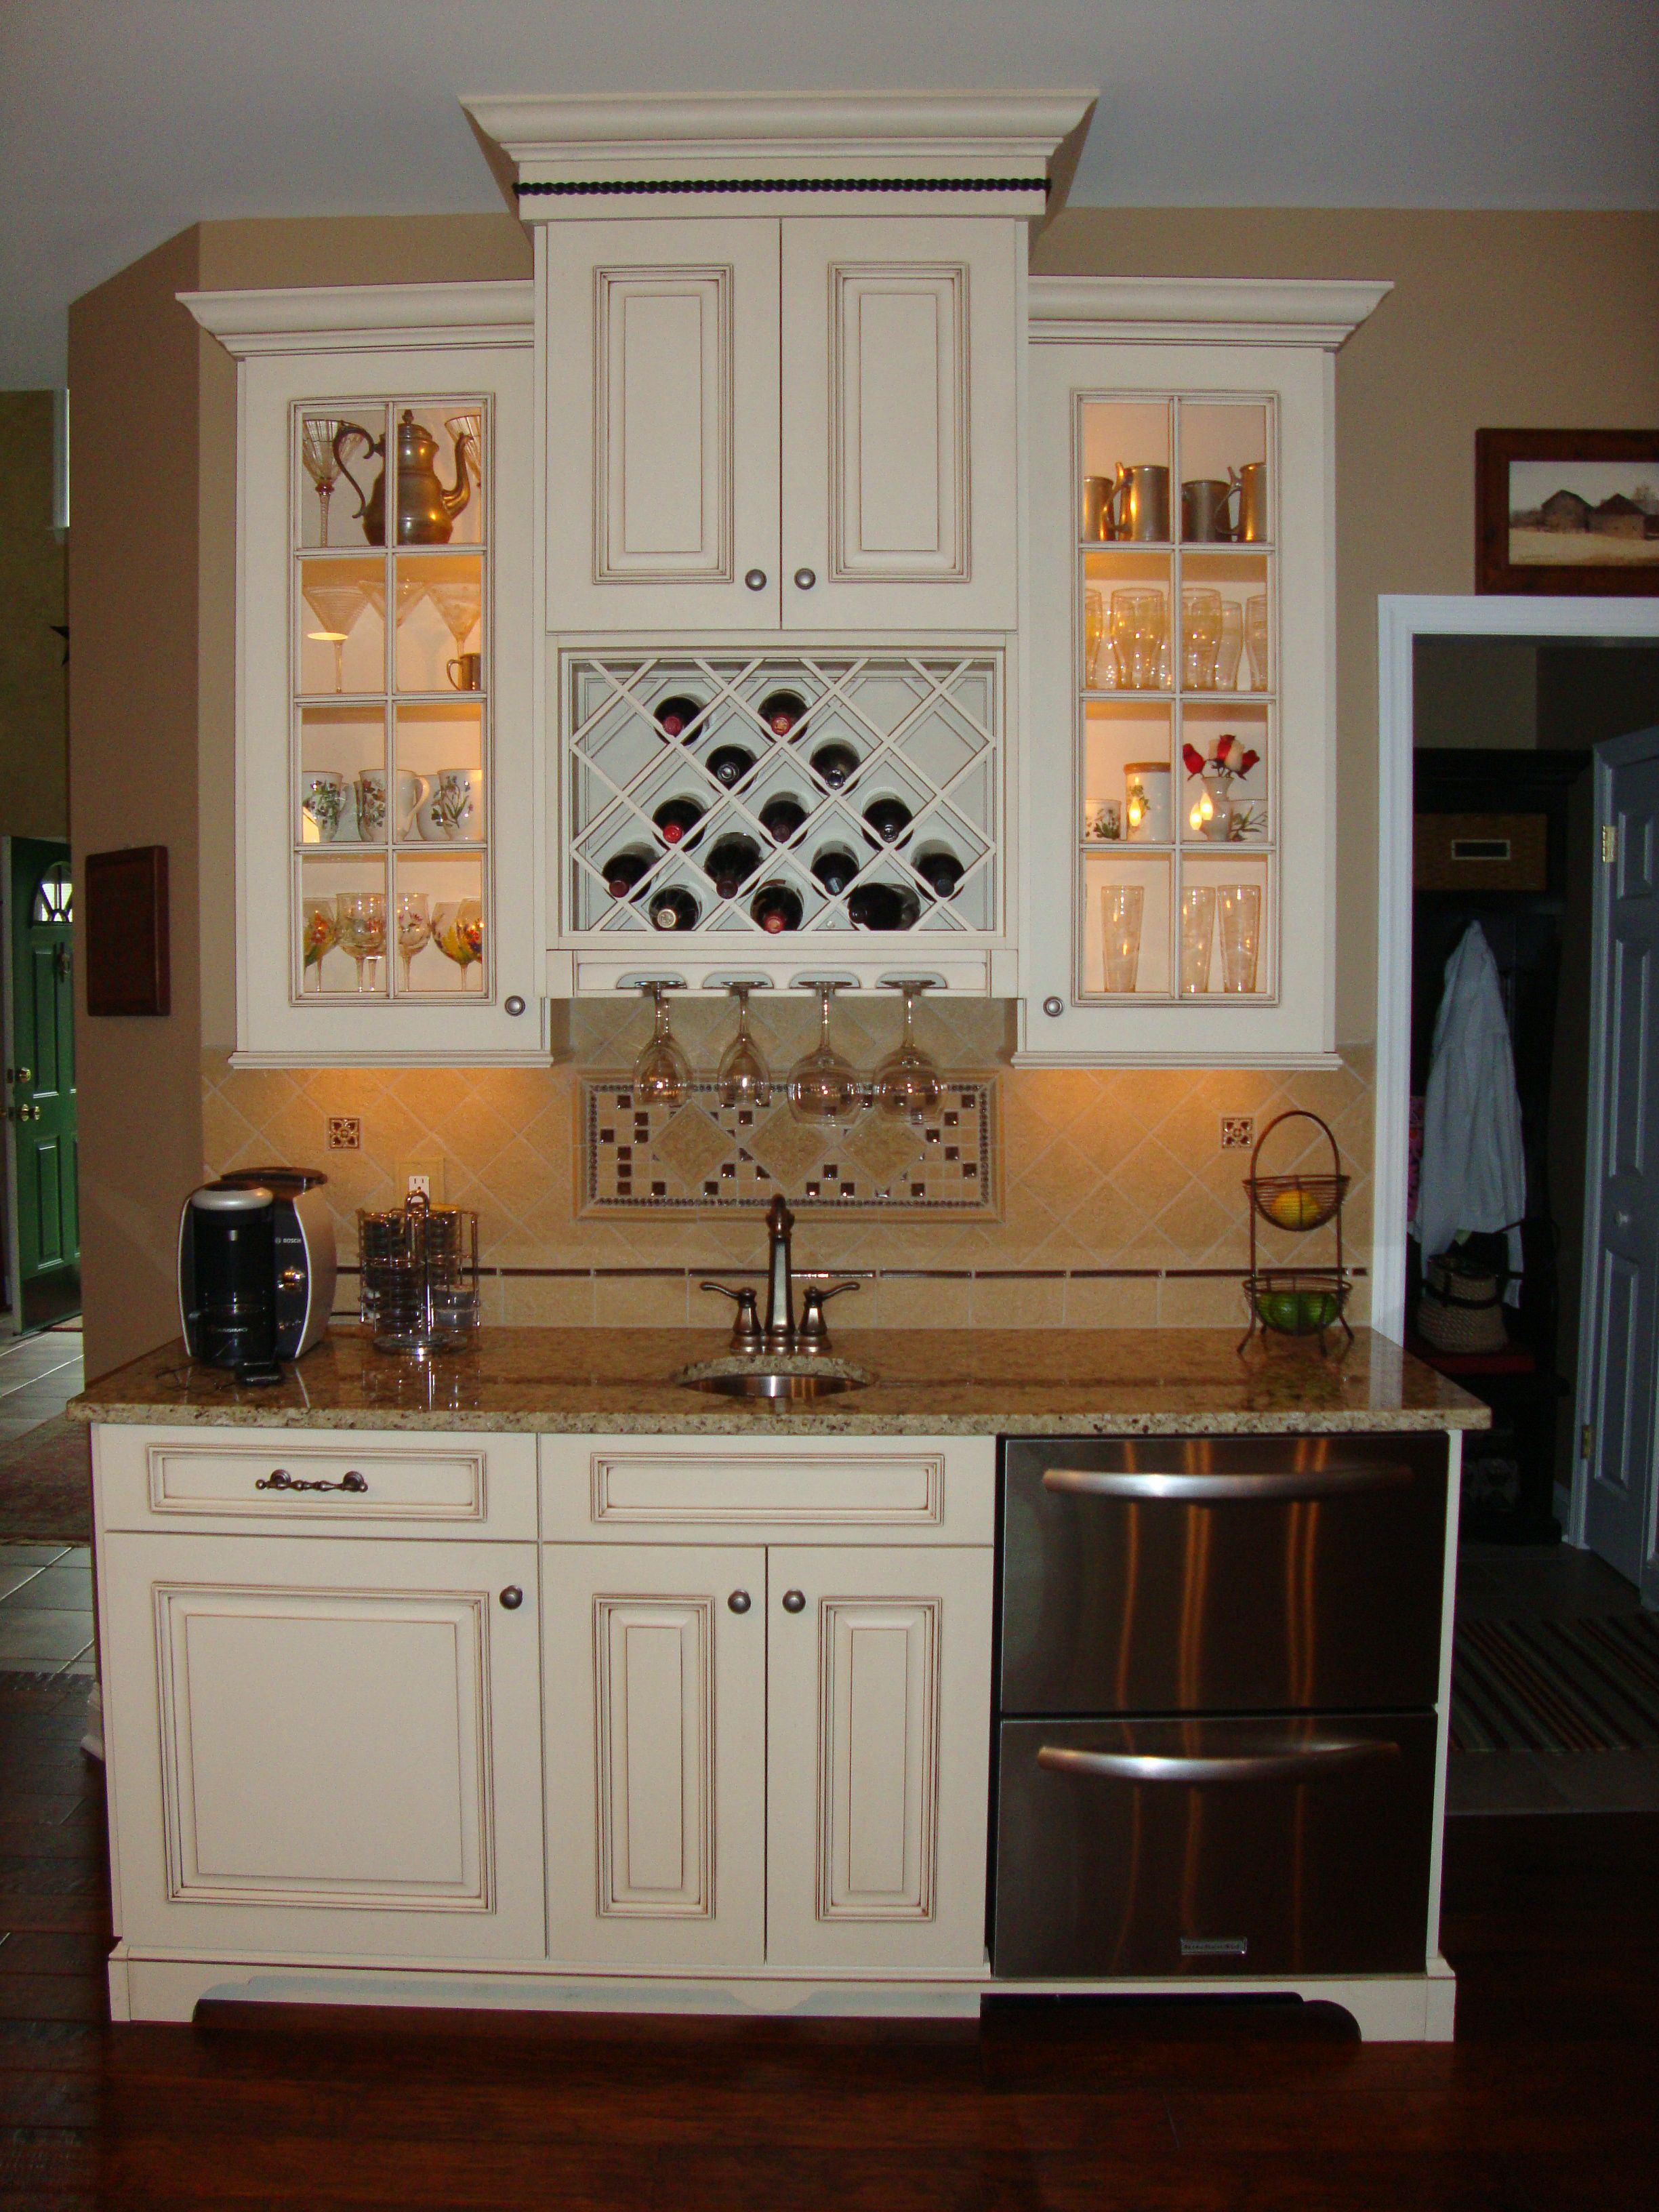 Kitchen Wine Cabinet Cute Built In Wine Rack And Glass Light Up Cabinets But I